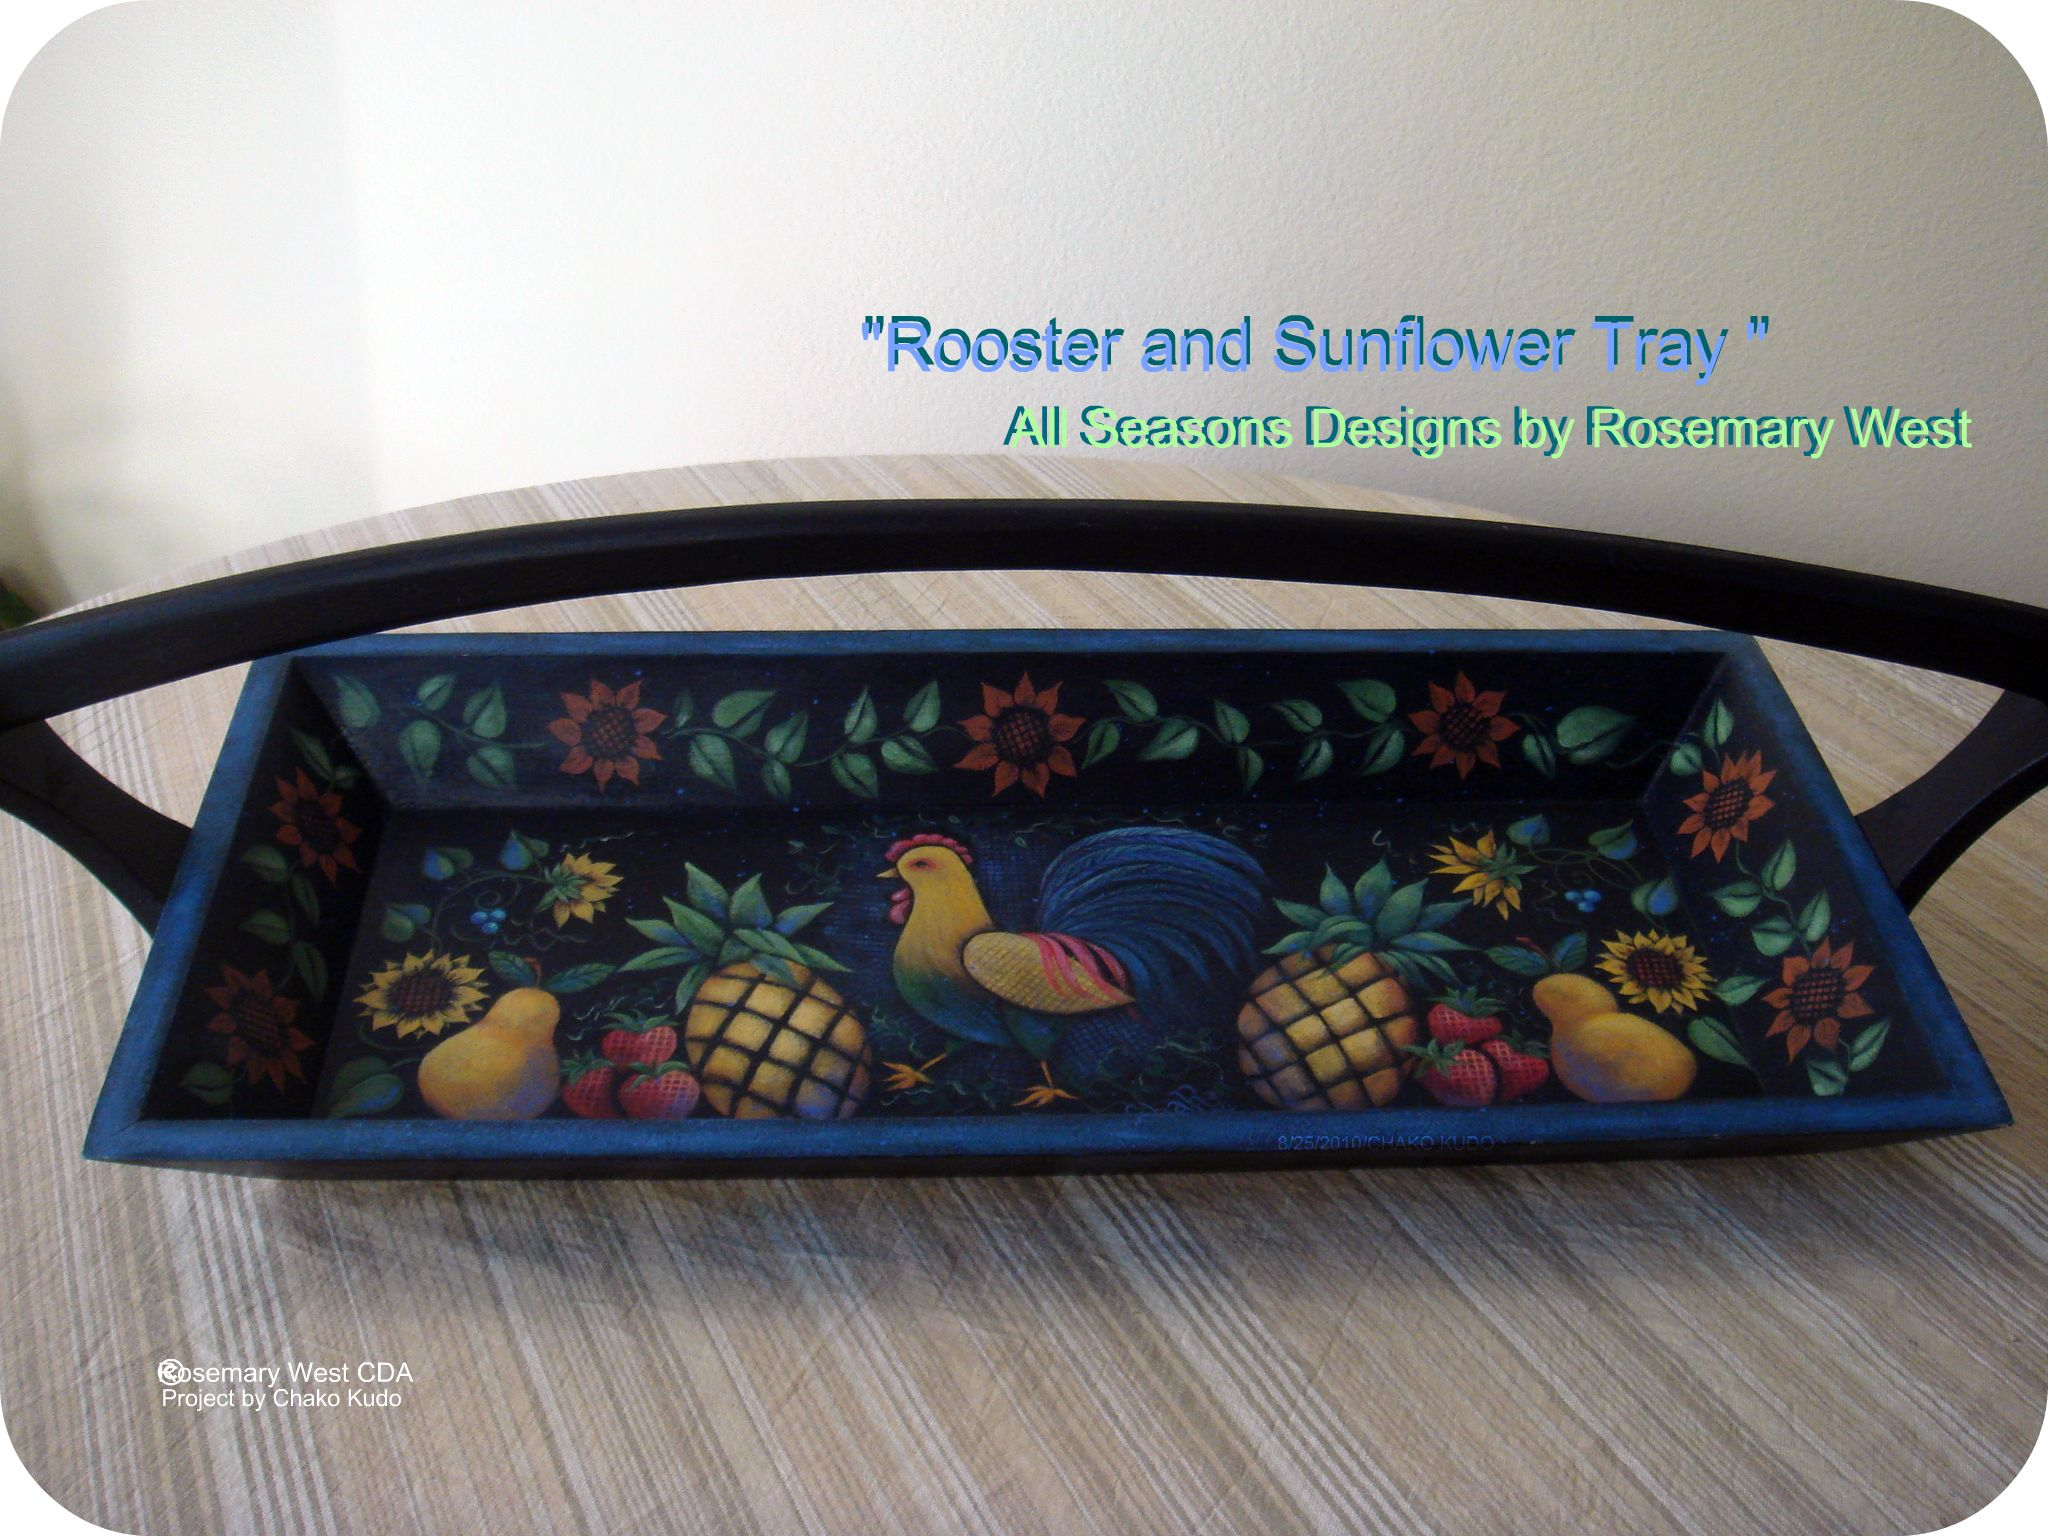 Rooster and Sunflower Tray